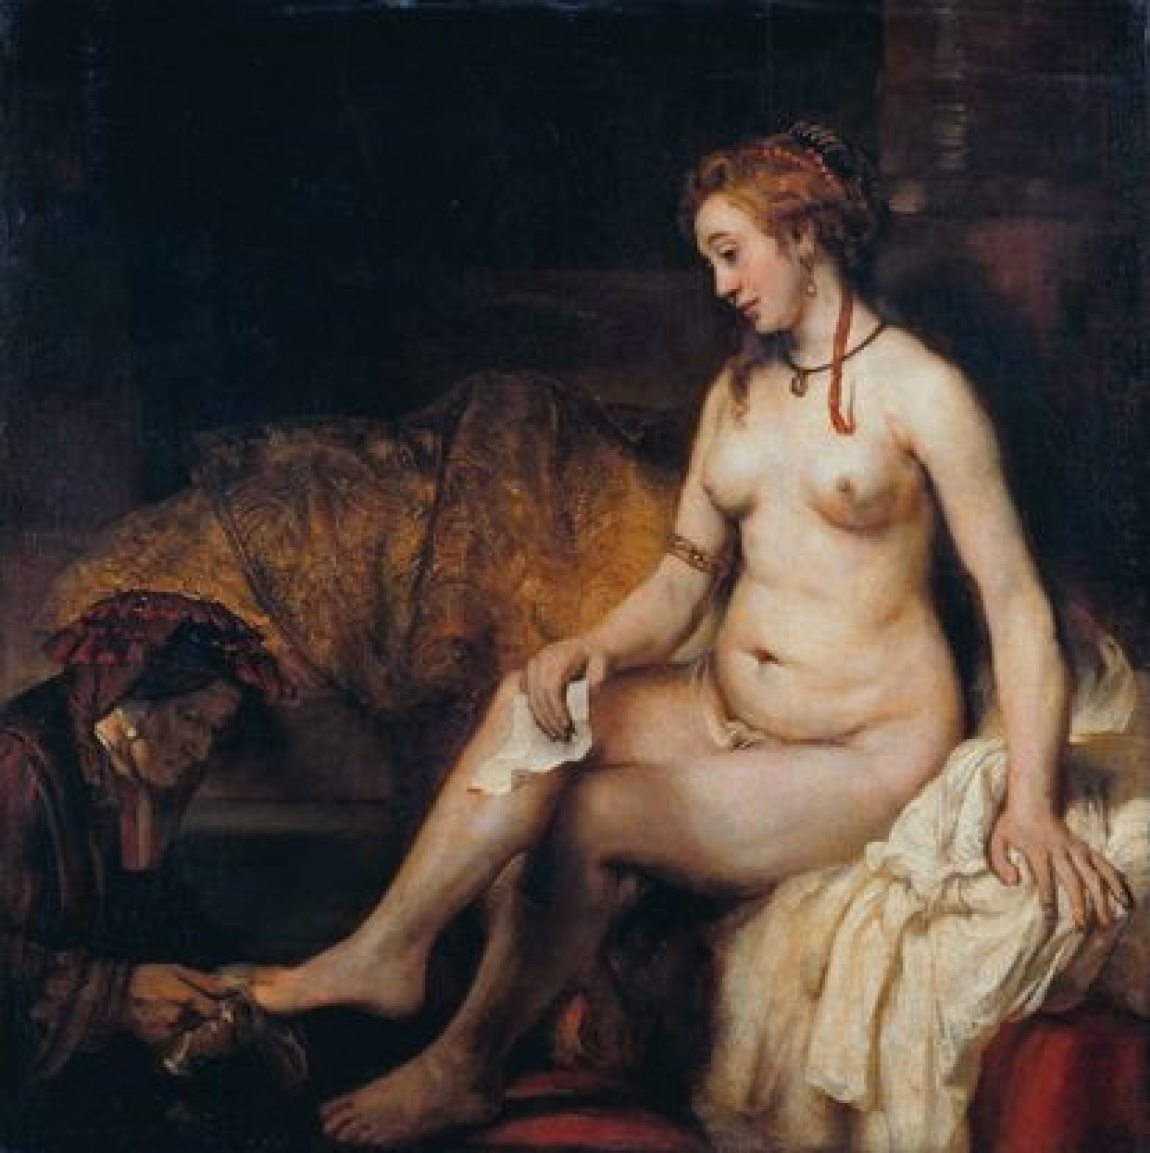 'Bathsheba with the letter of David', by Rembrandt.